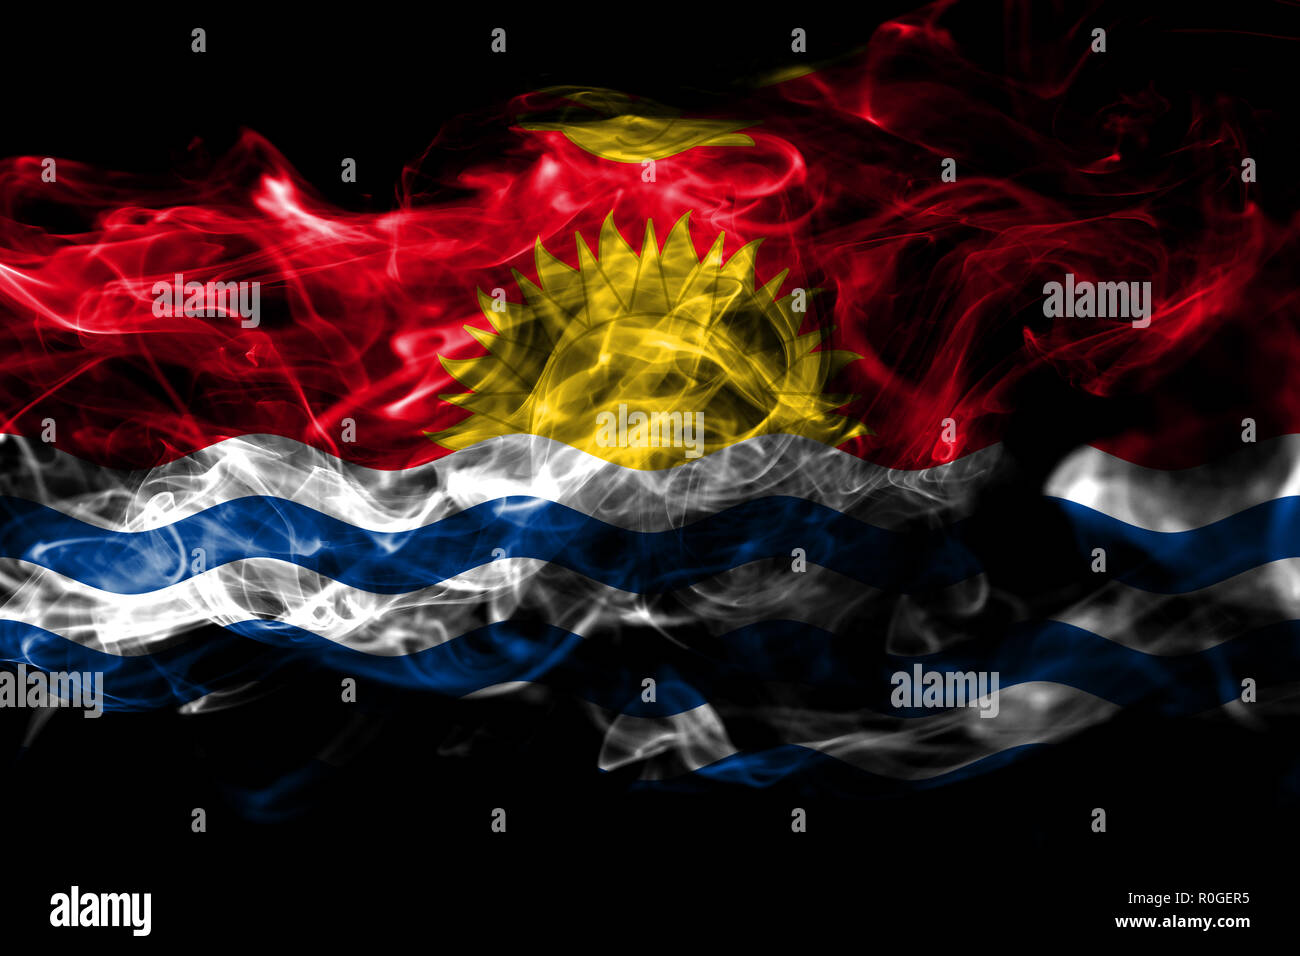 National flag of Kiribati made from colored smoke isolated on black background. Abstract silky wave background - Stock Image